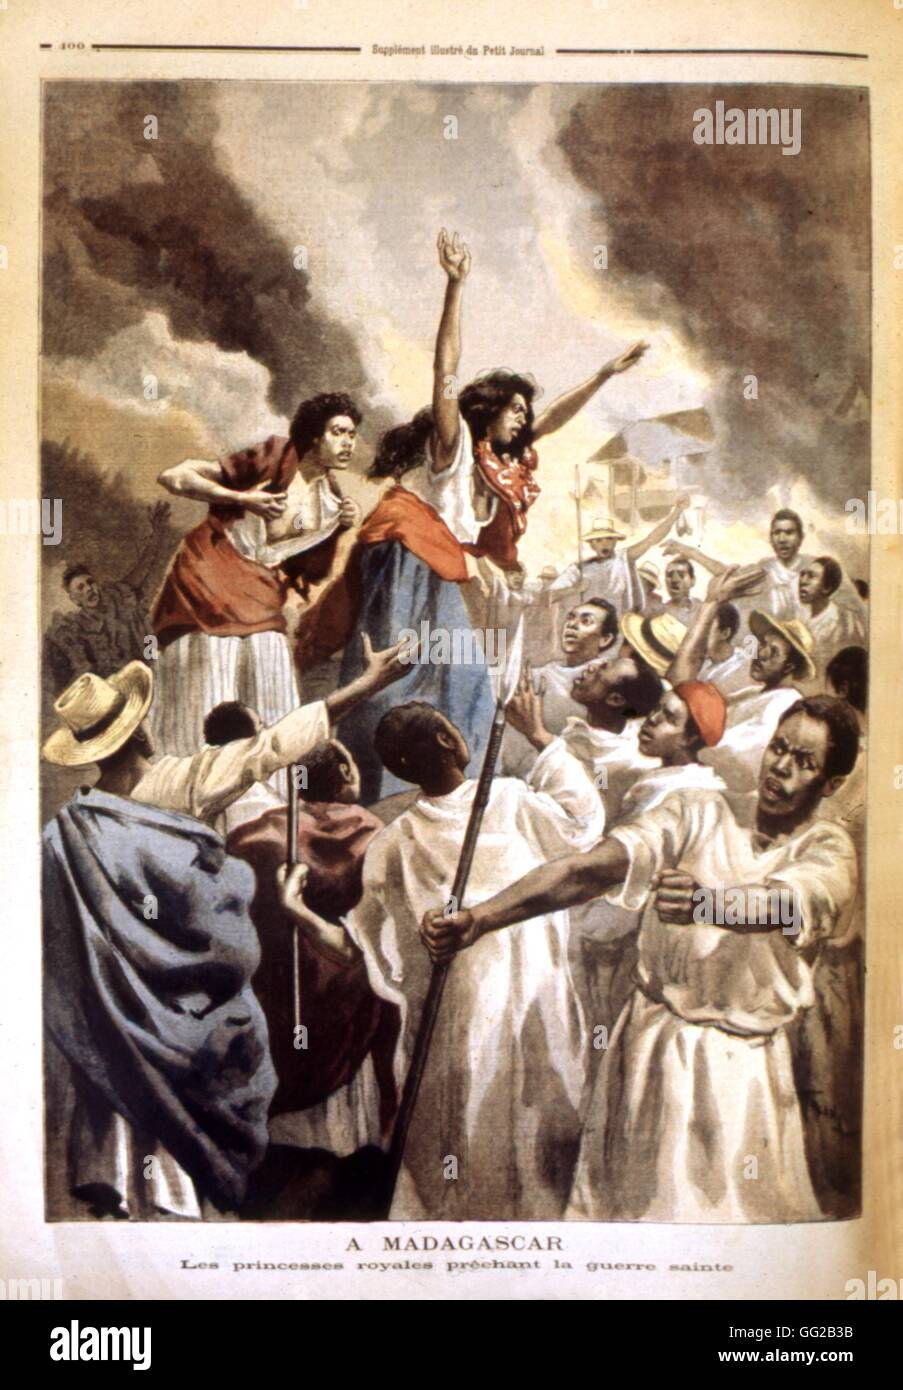 The royal princesses preaching the holy war  19th century Madagascar - Stock Image